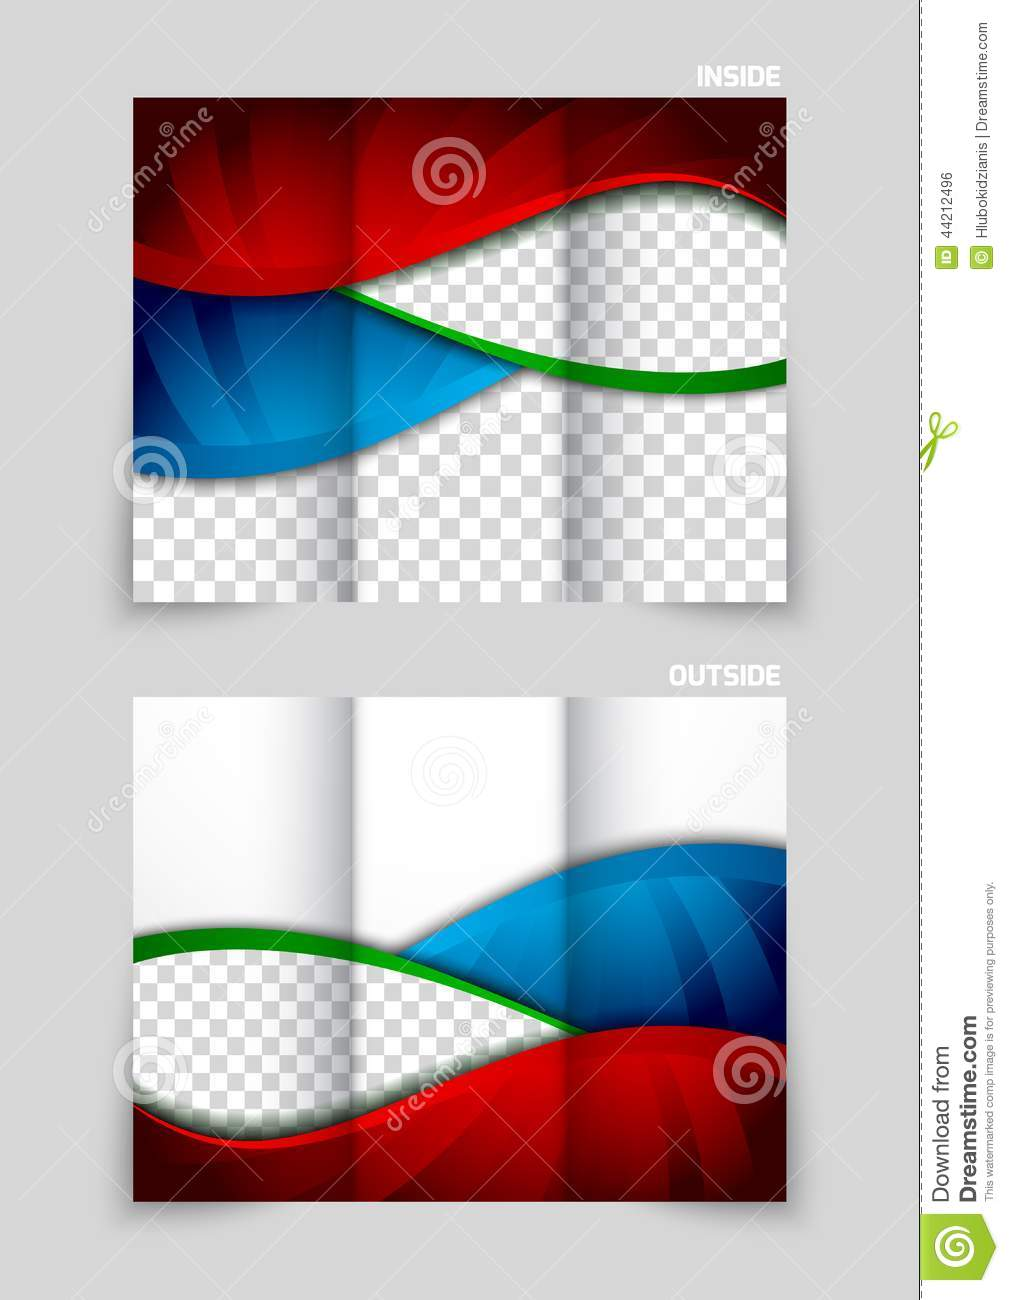 Tri fold brochure template design stock vector for Tri fold brochure template download